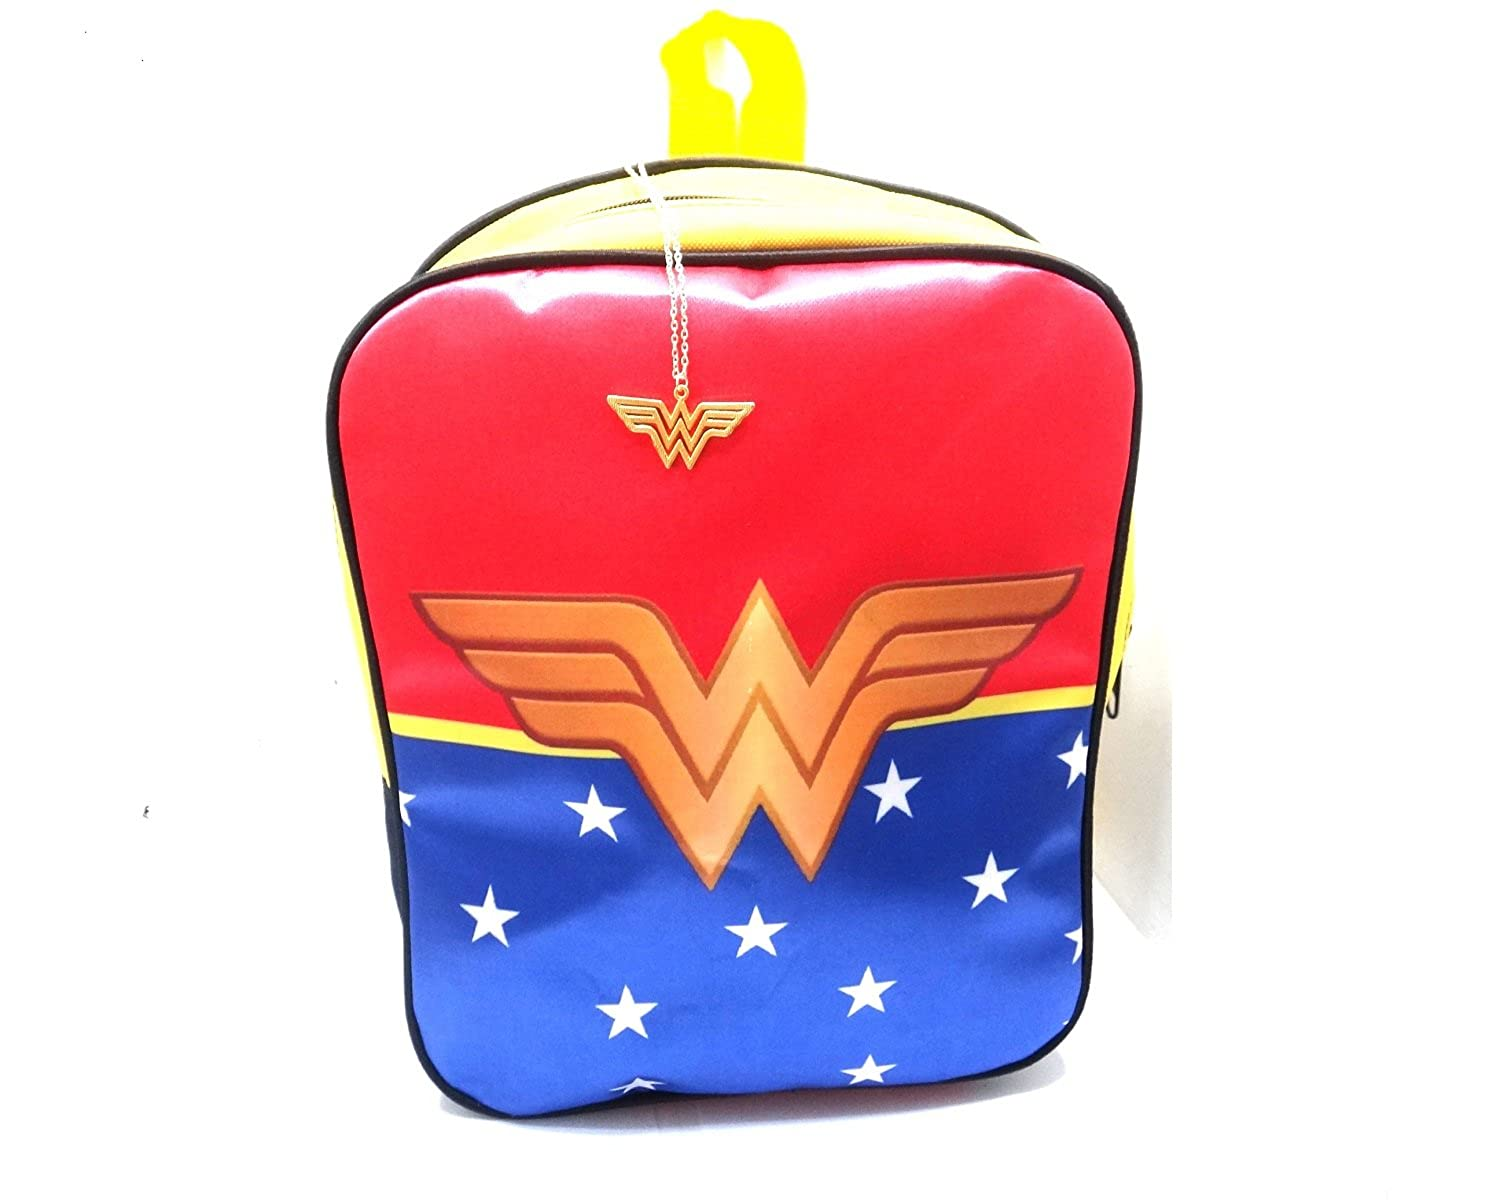 GSC Moda Wonder Woman MiniバックパックデイパックバッグLadys Girls Set Includes neacklaces B07DM62T7W